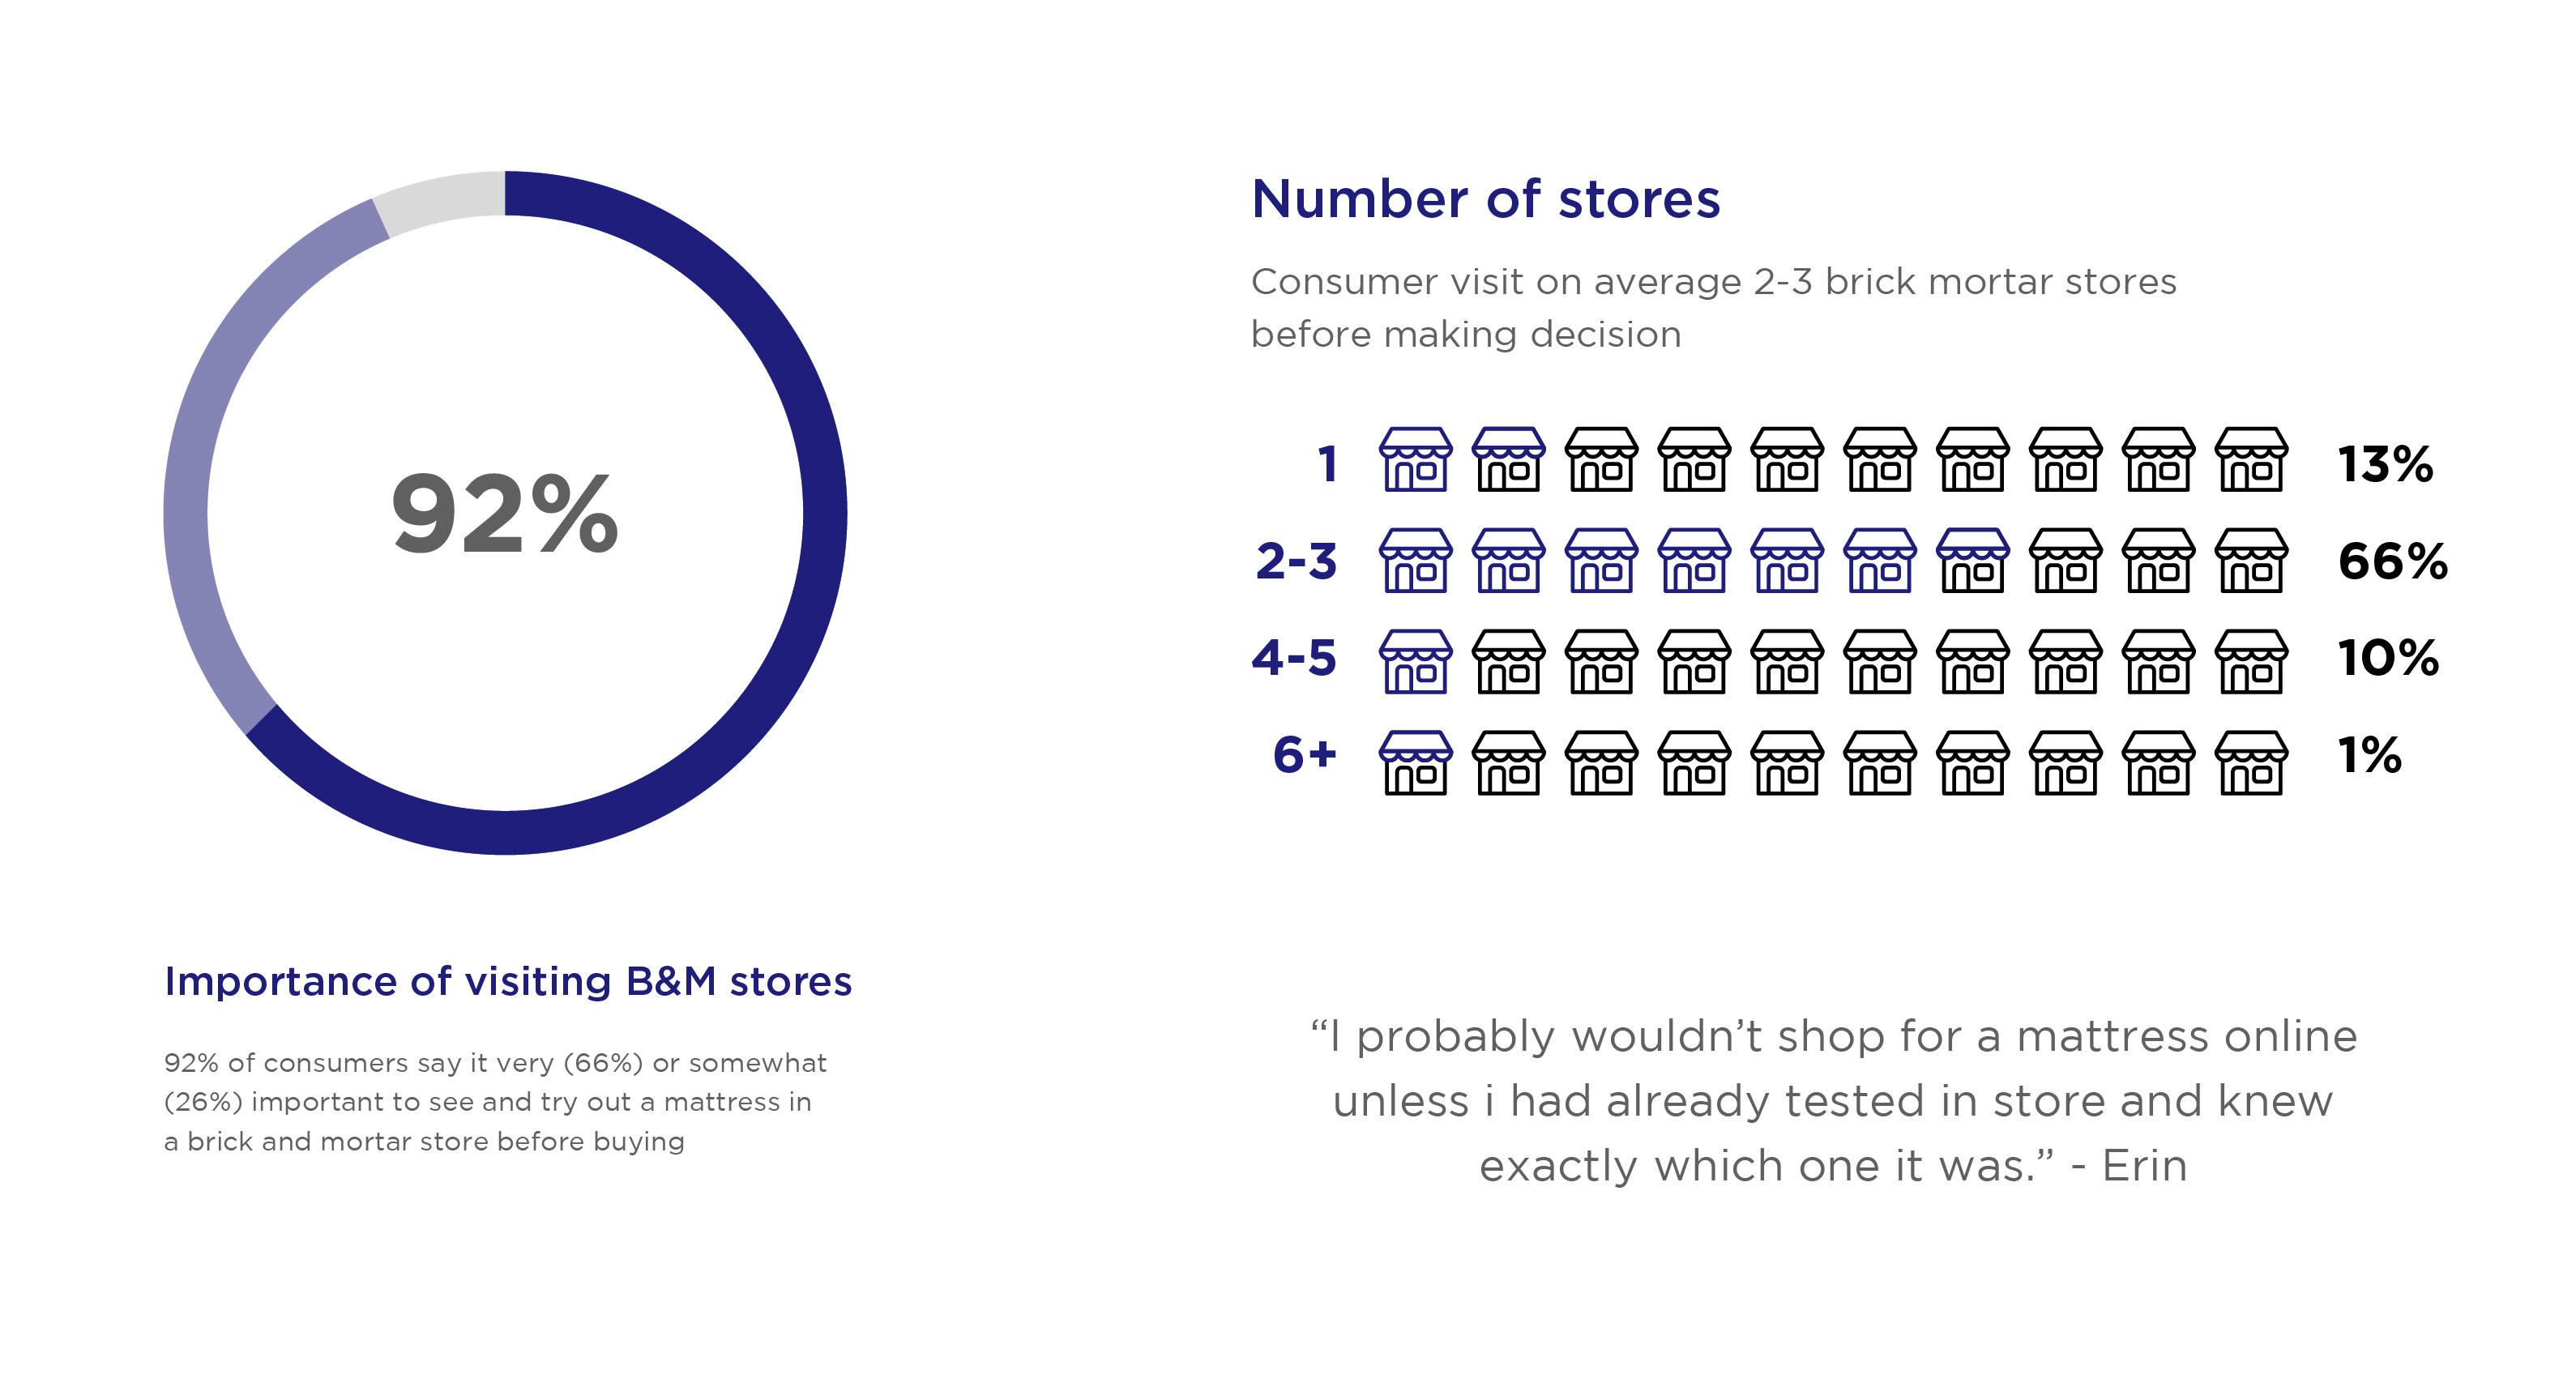 Importance of Brick and Mortar Stores